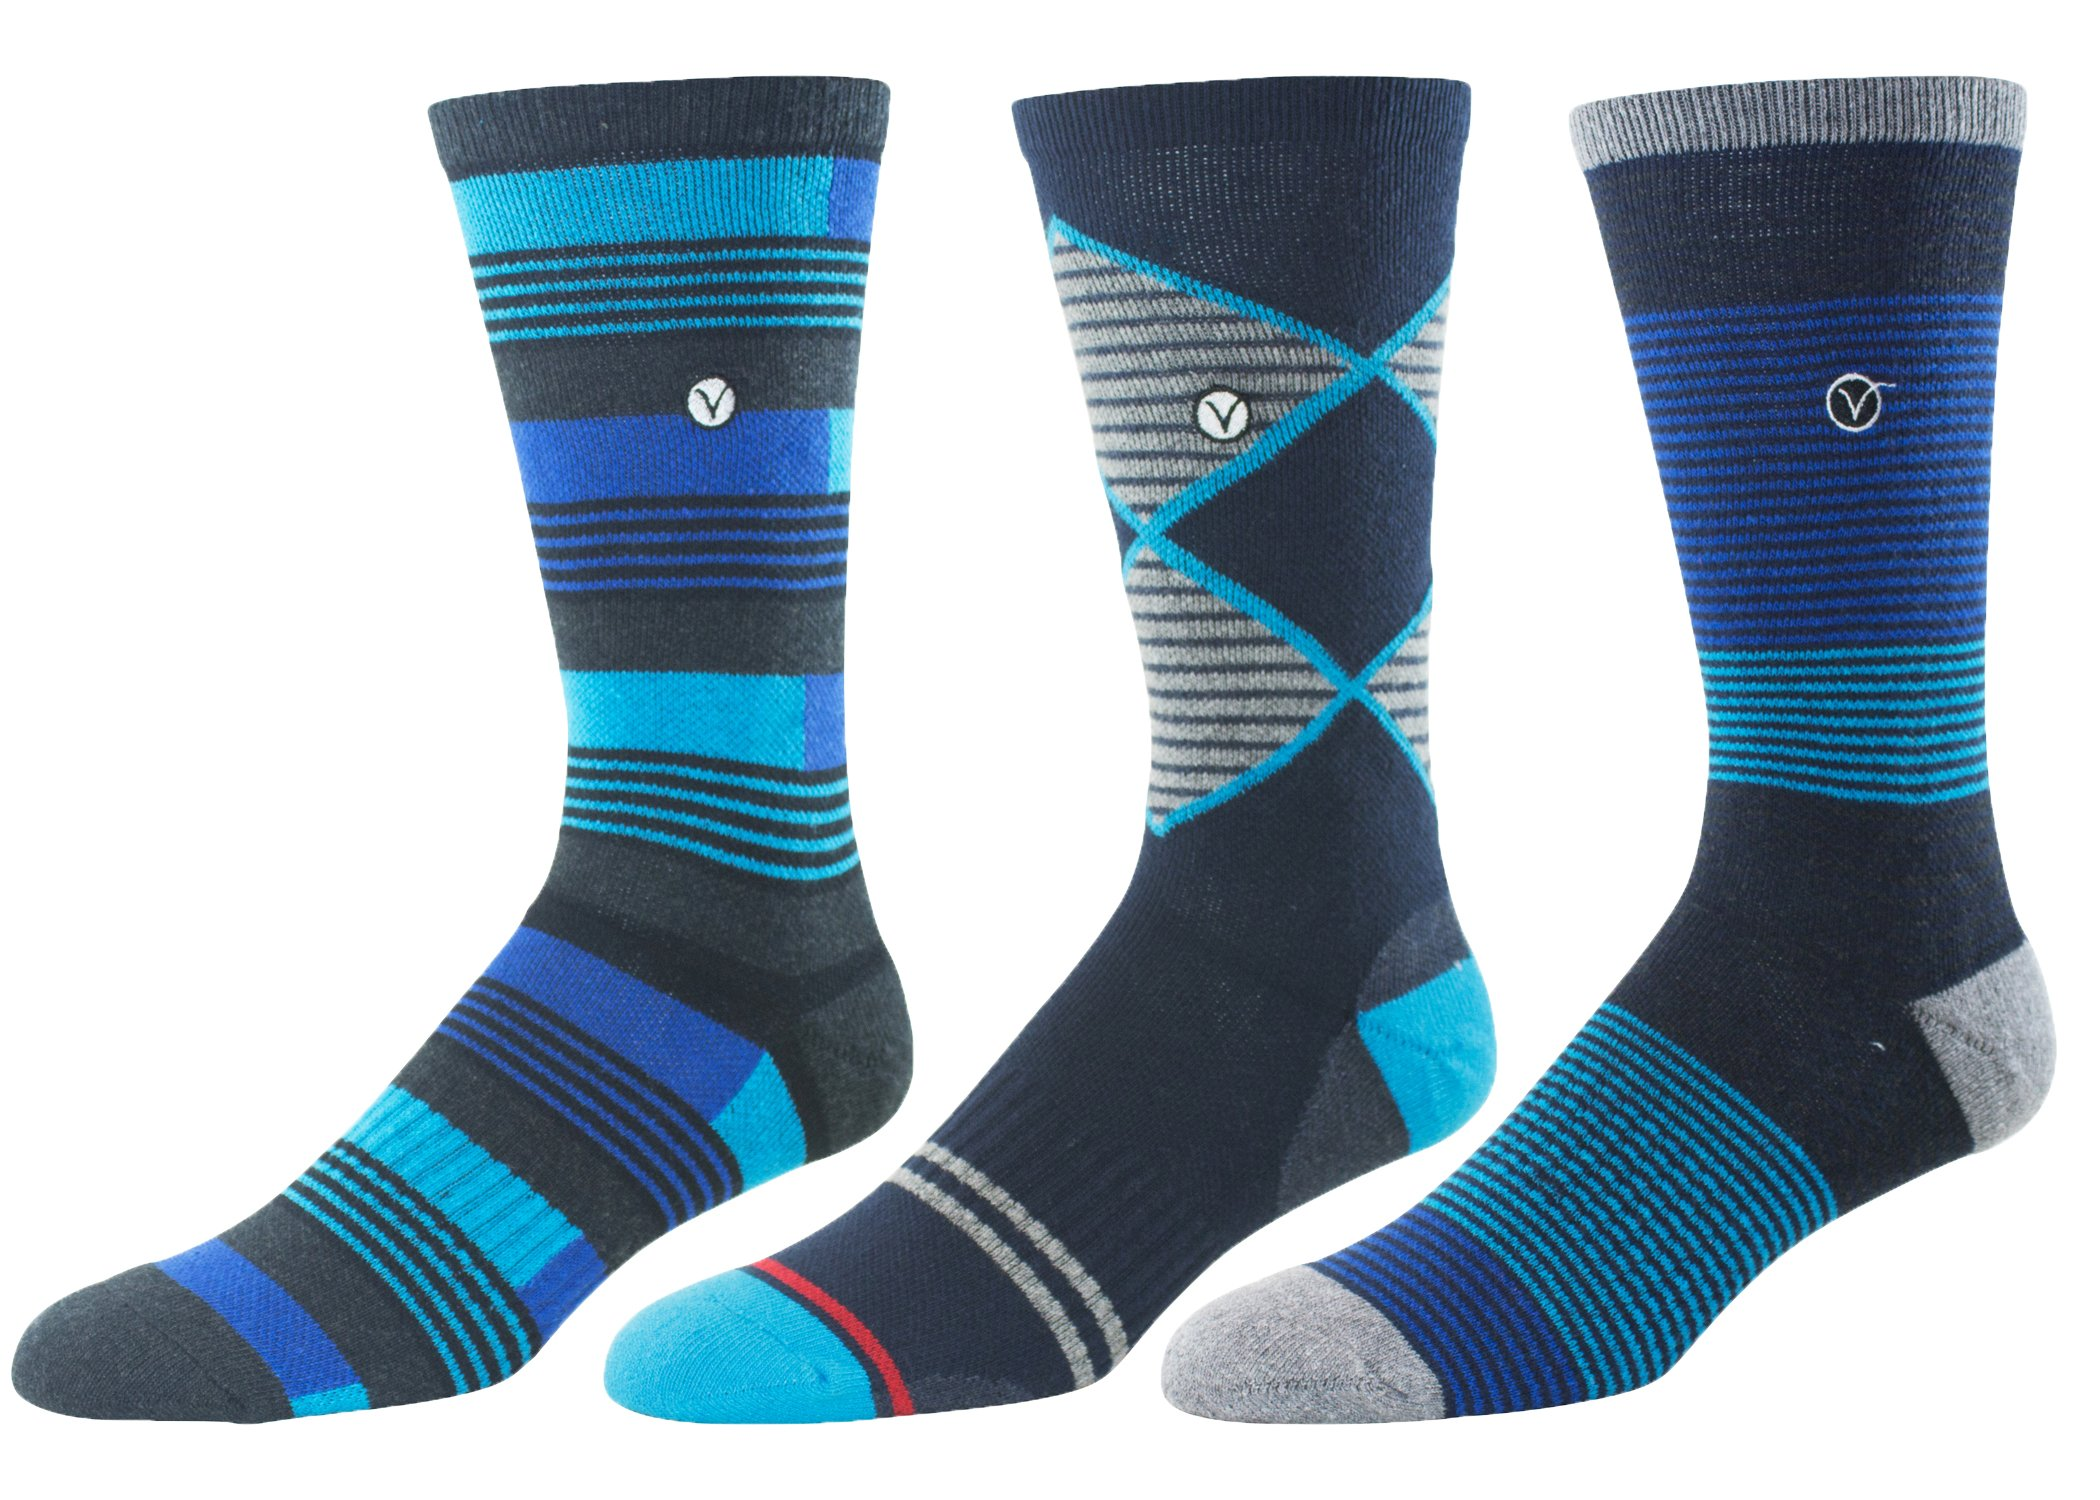 Mens 3 Pack Causal Cotton Socks – Versatile For Any Occasion By VYBE Size (9-13) (Combo G)